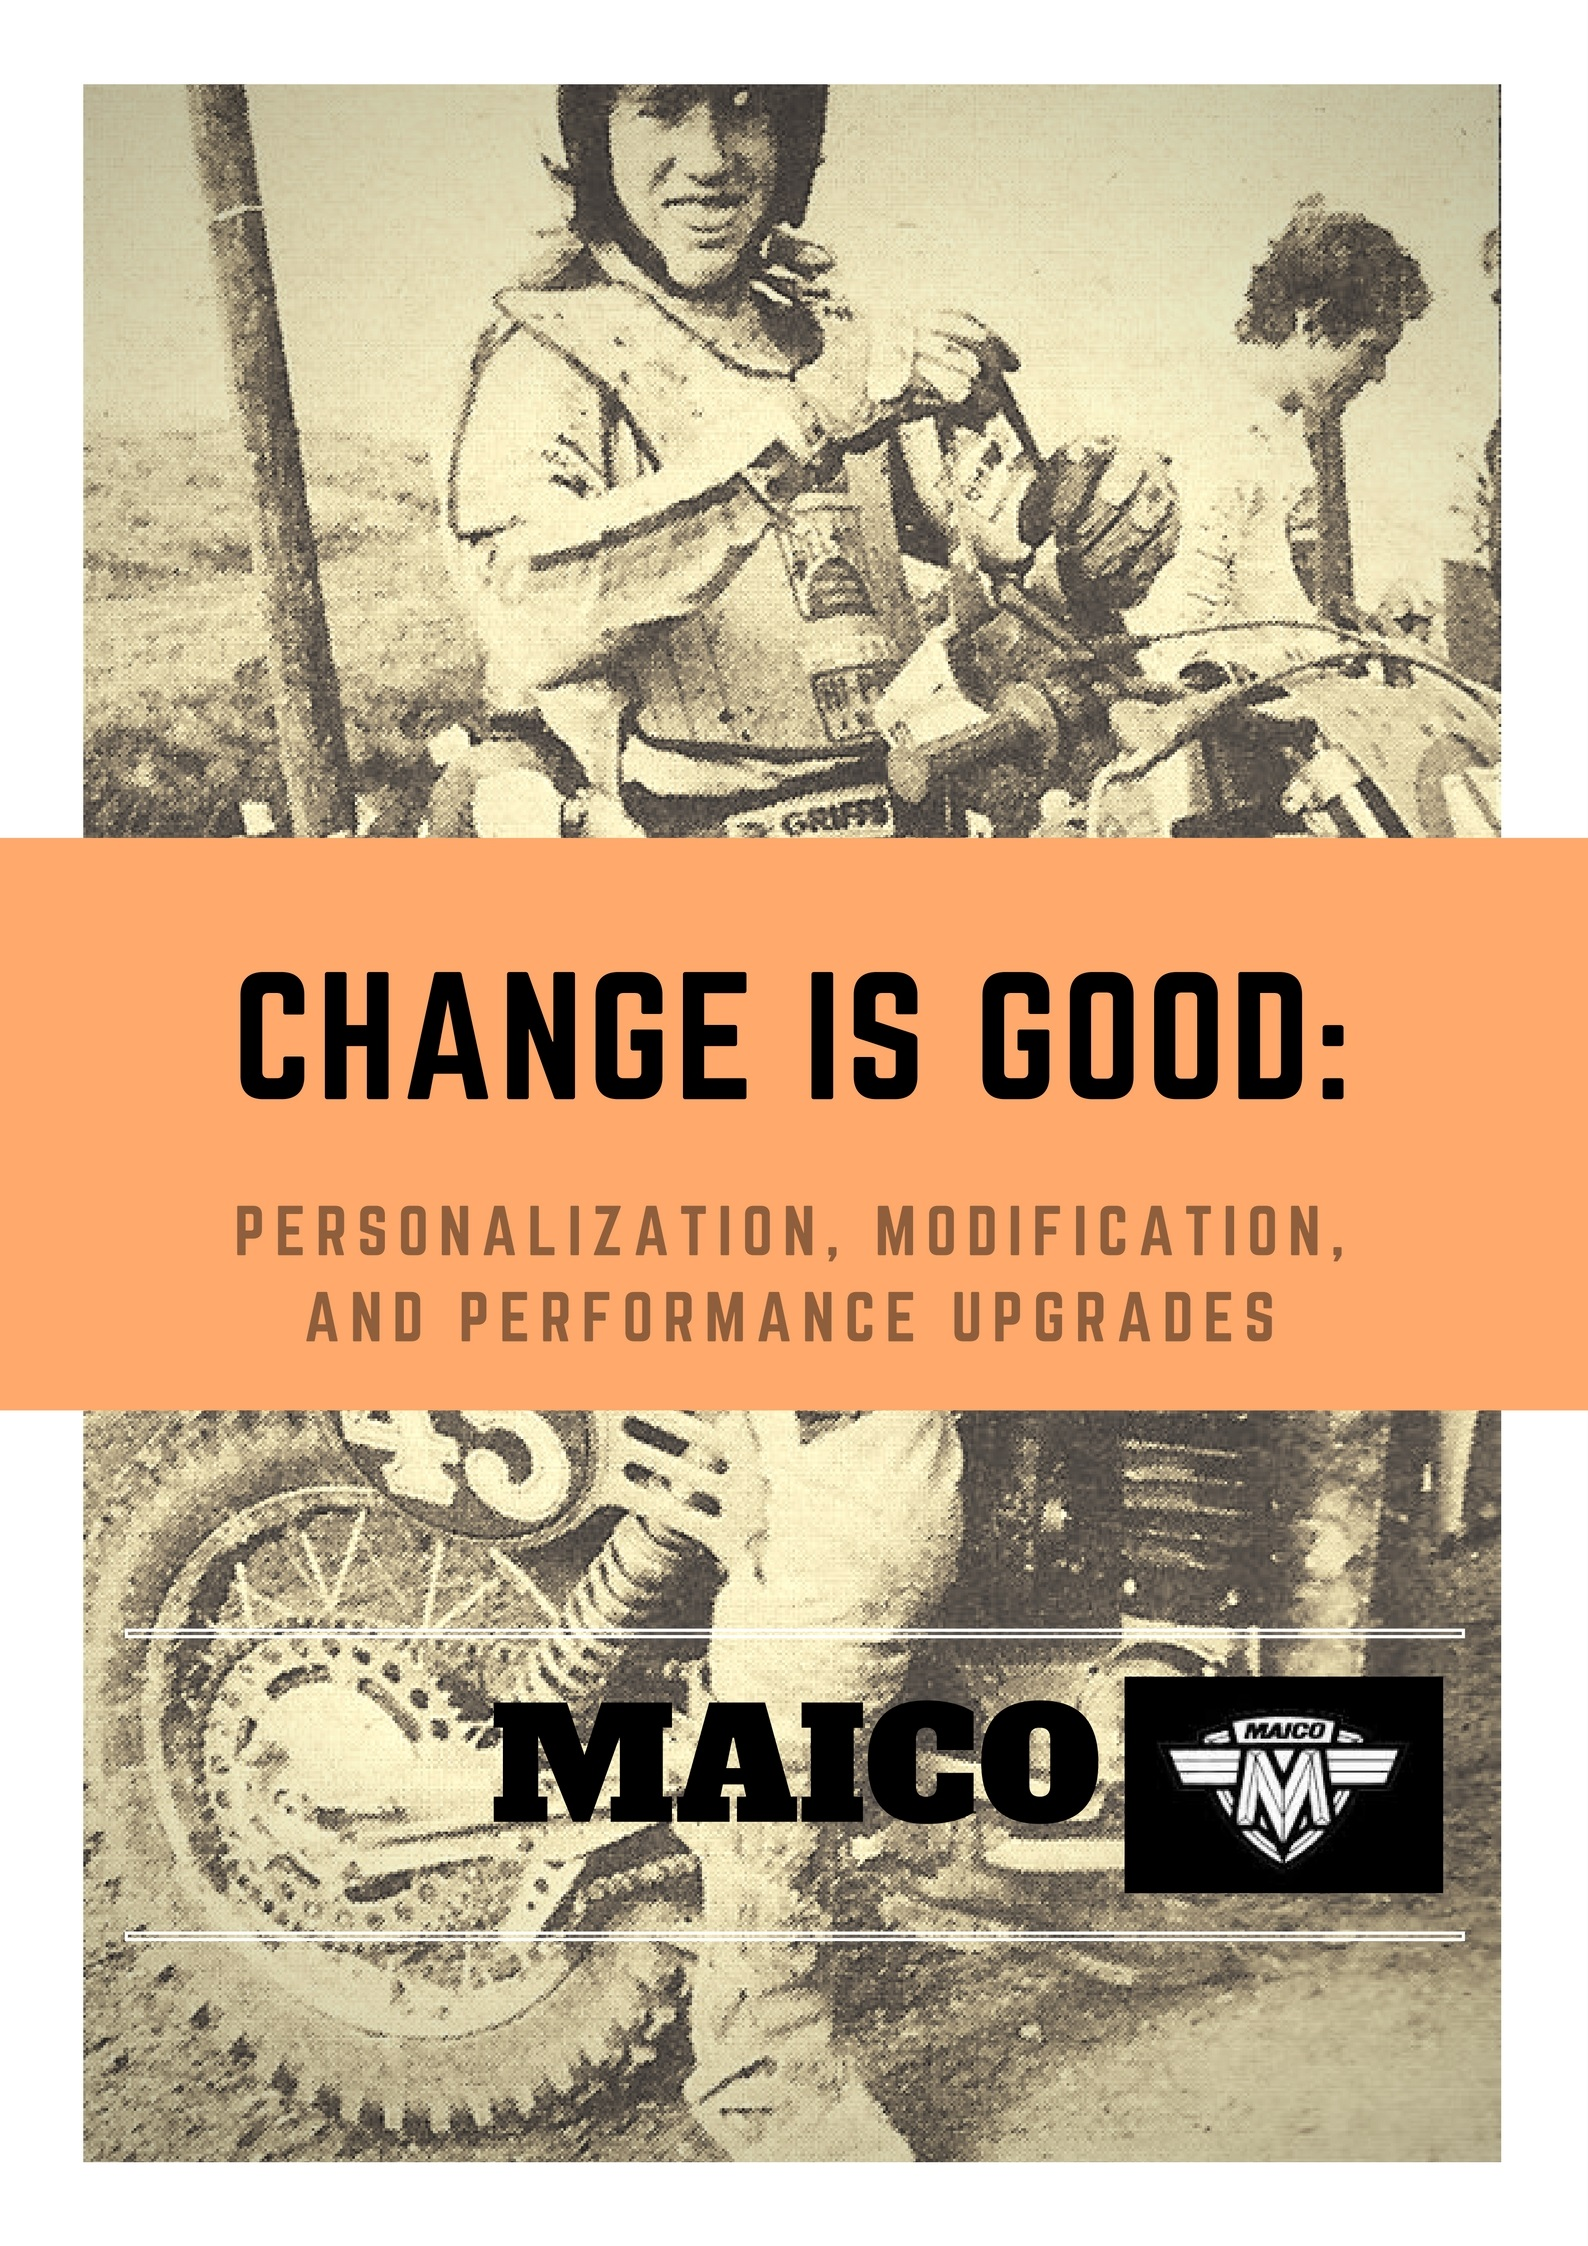 maico motorcycle customization